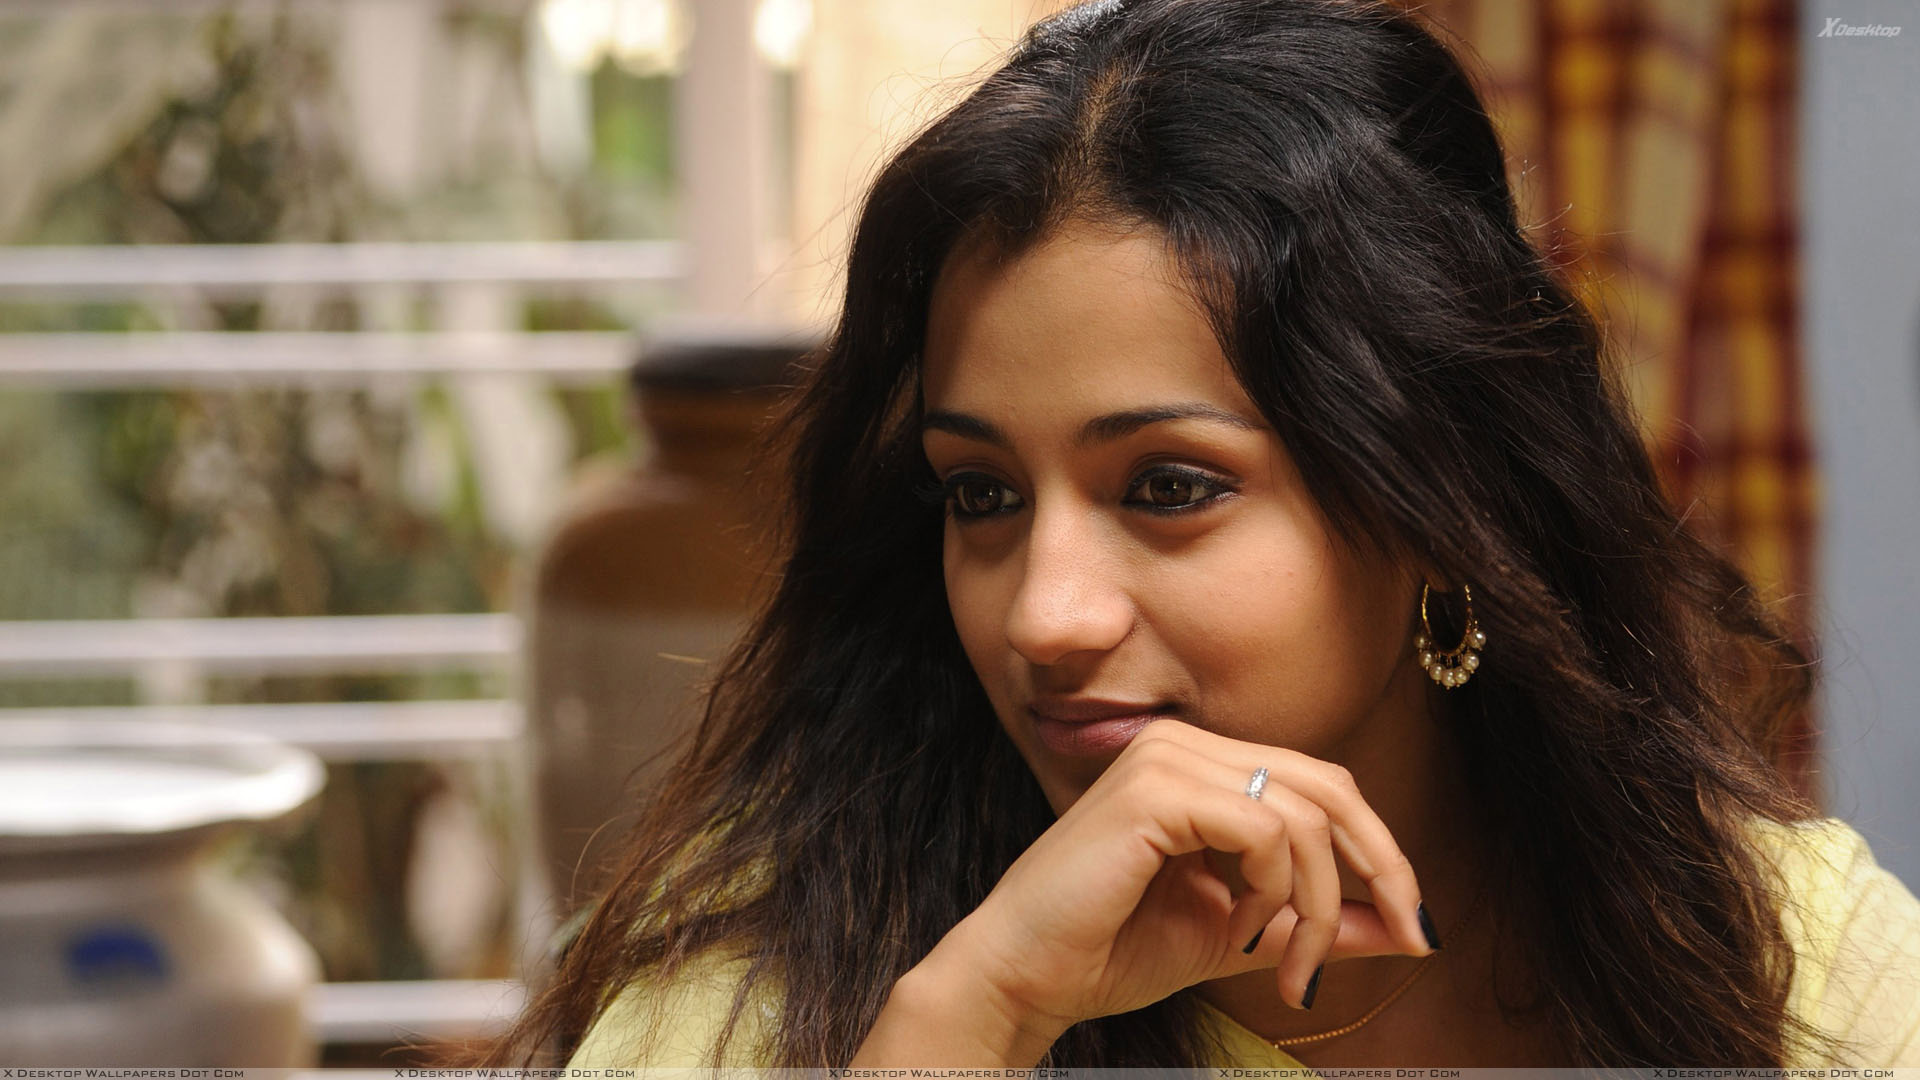 trisha krishnan smiling innocent face sitting pose wallpaper